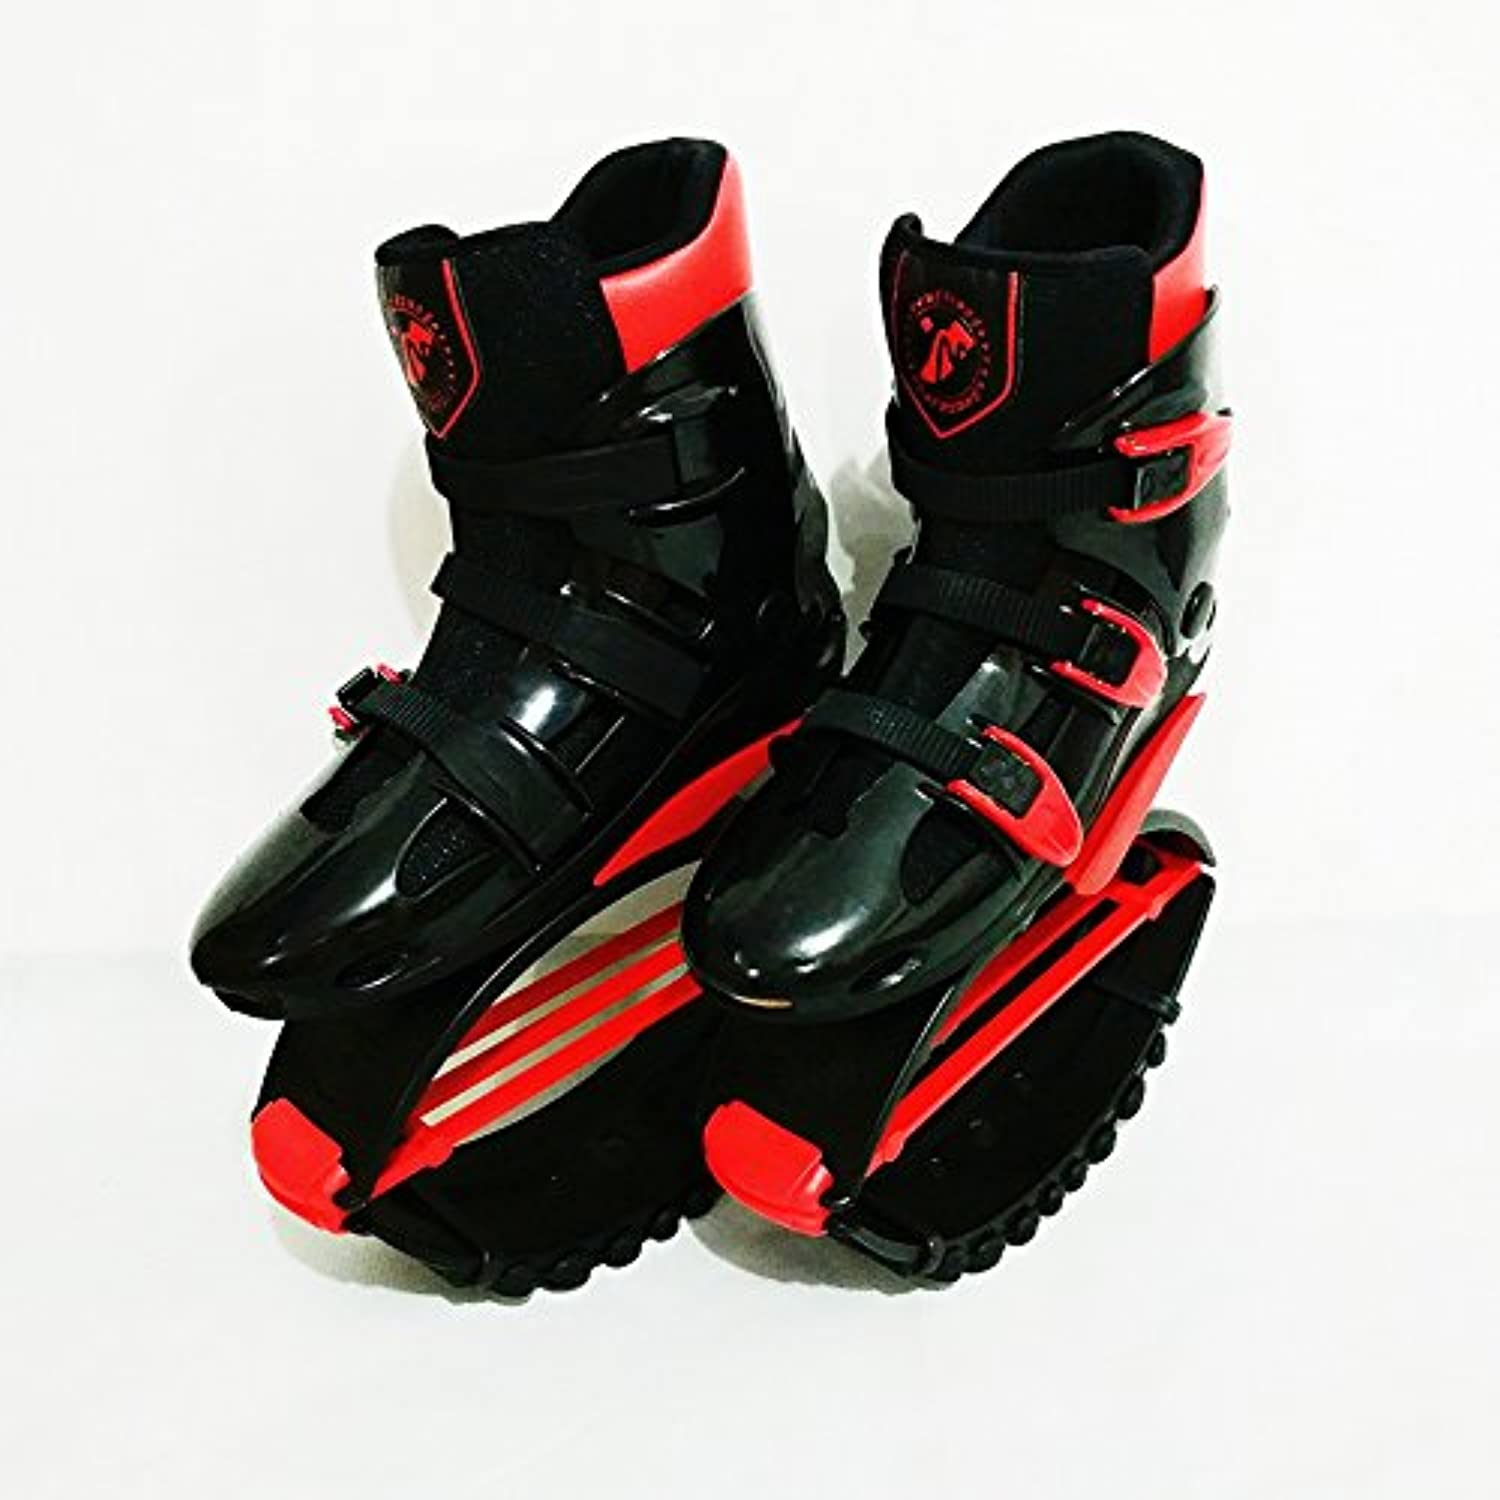 Saltar Rebotar Zapatos Unisex Jumping Boots Bounce Outdoor Sports,Red,L